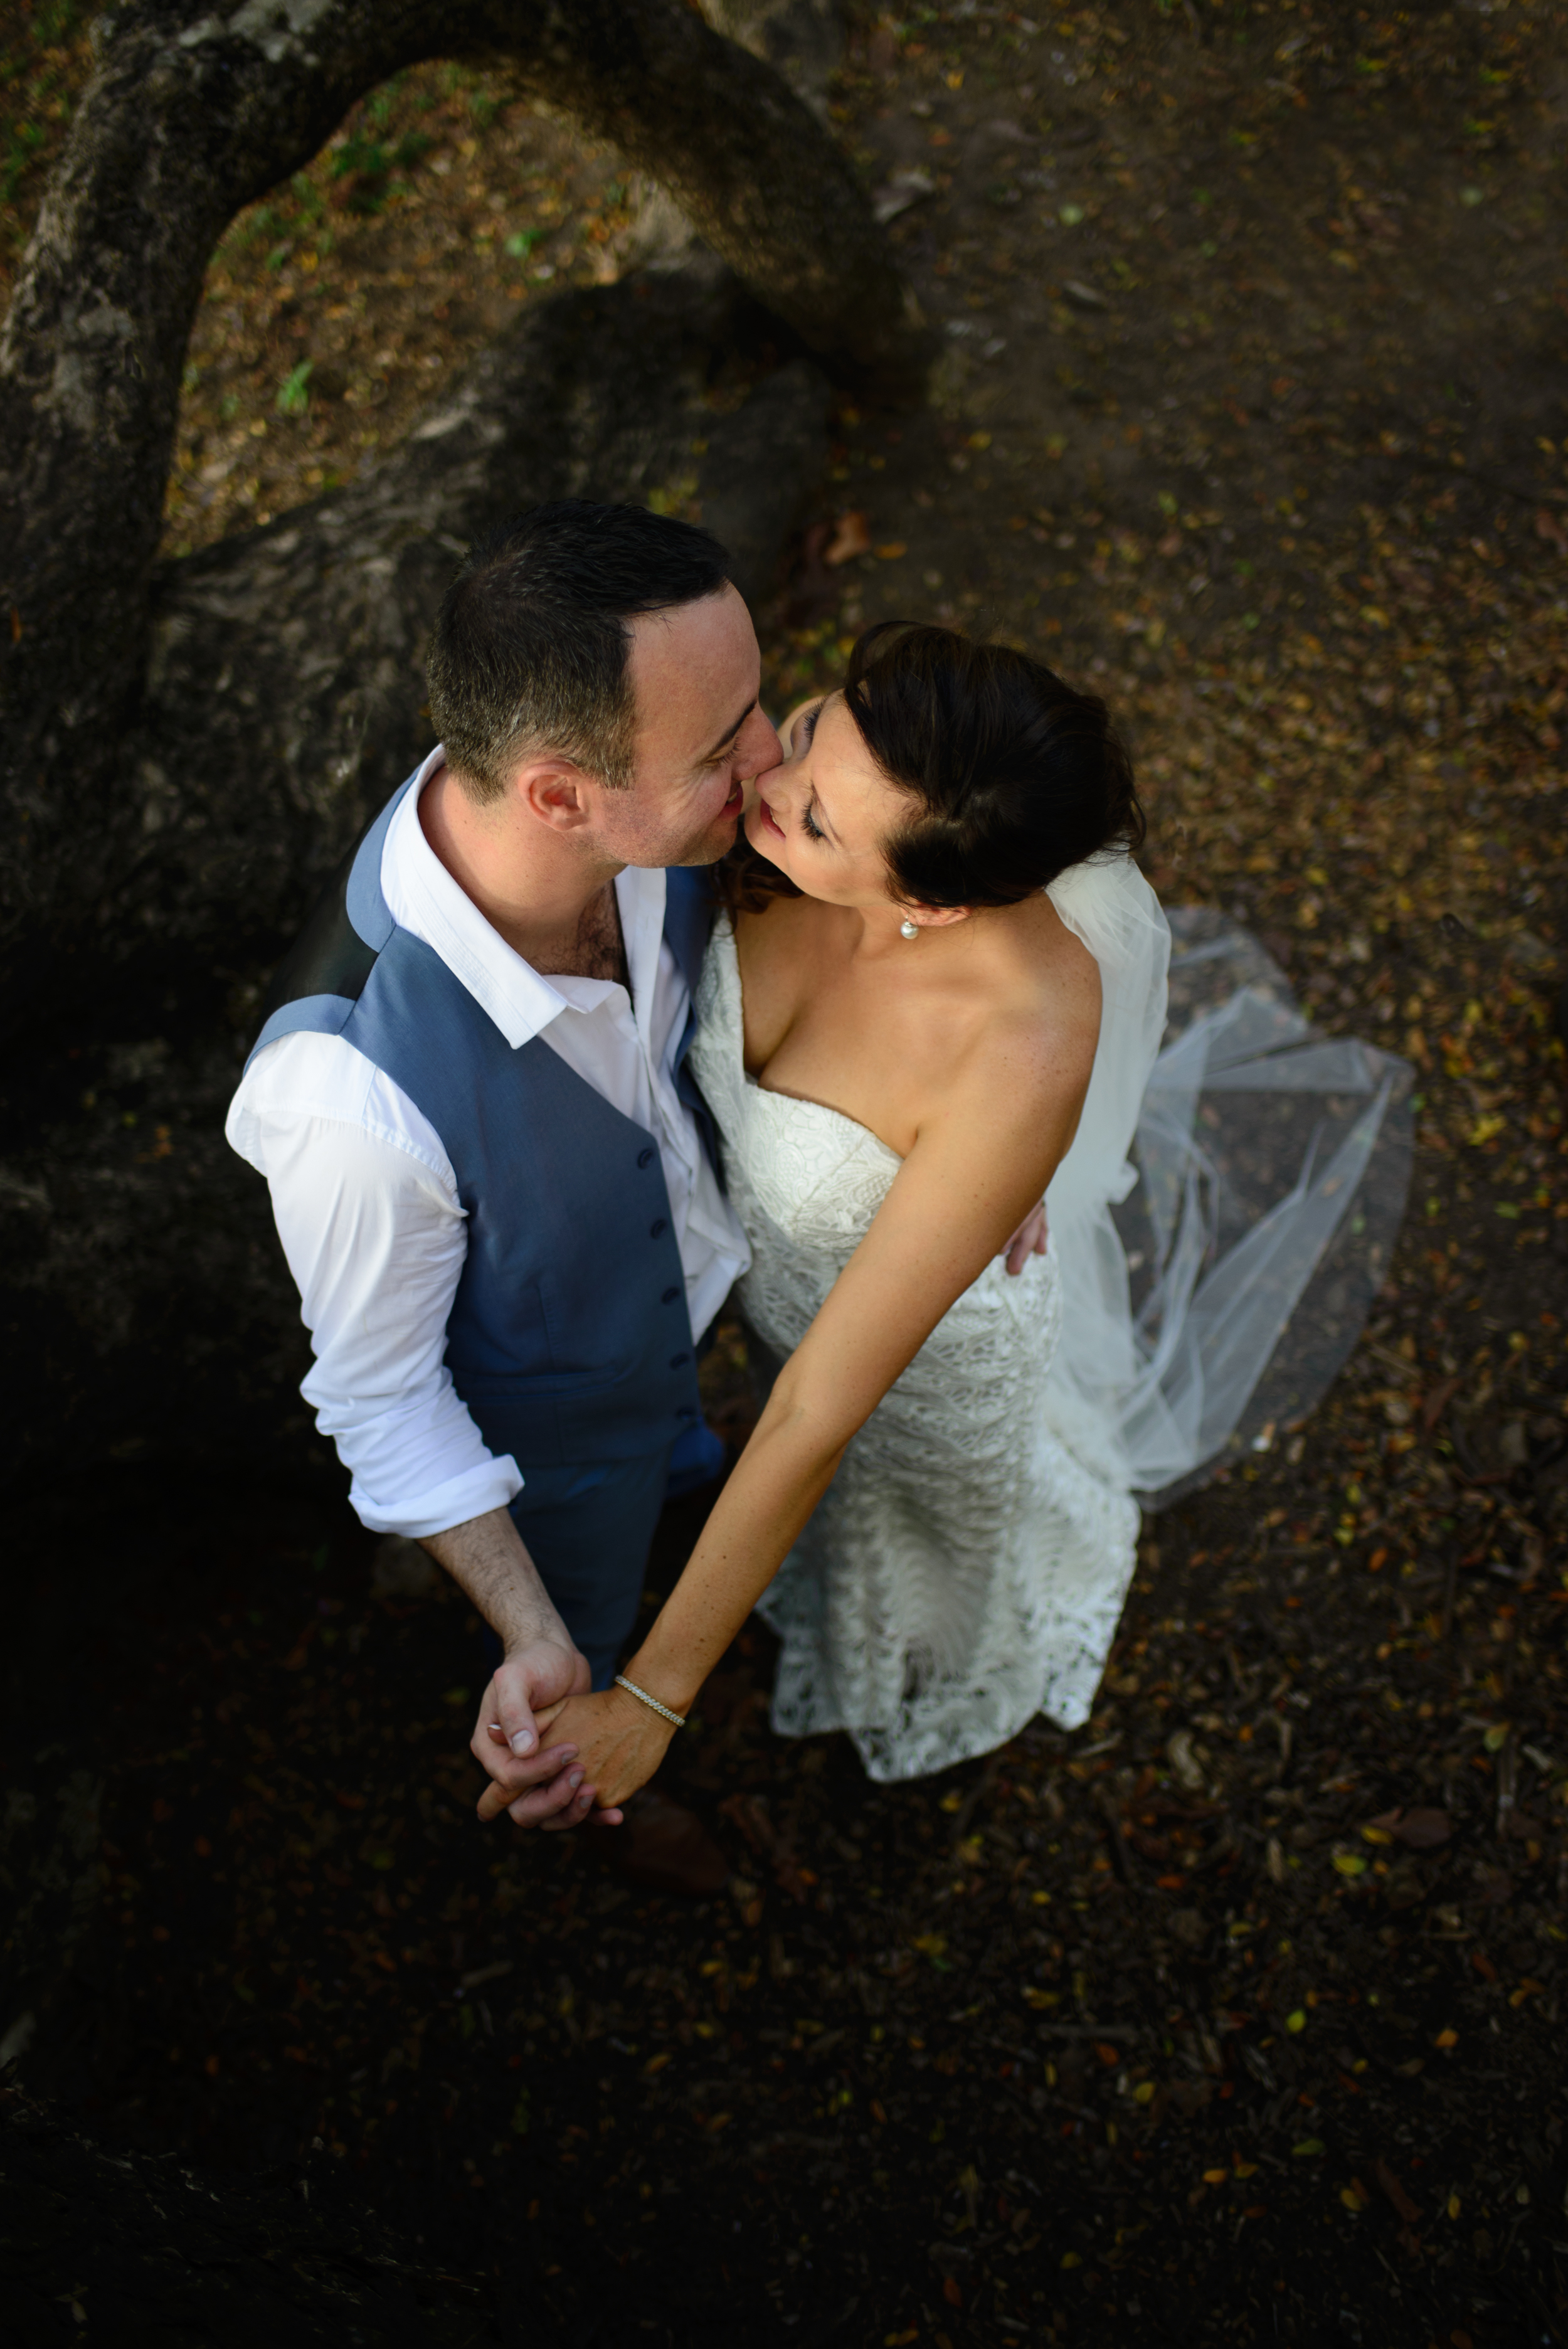 Mark and Suzanne - Top End Weddings